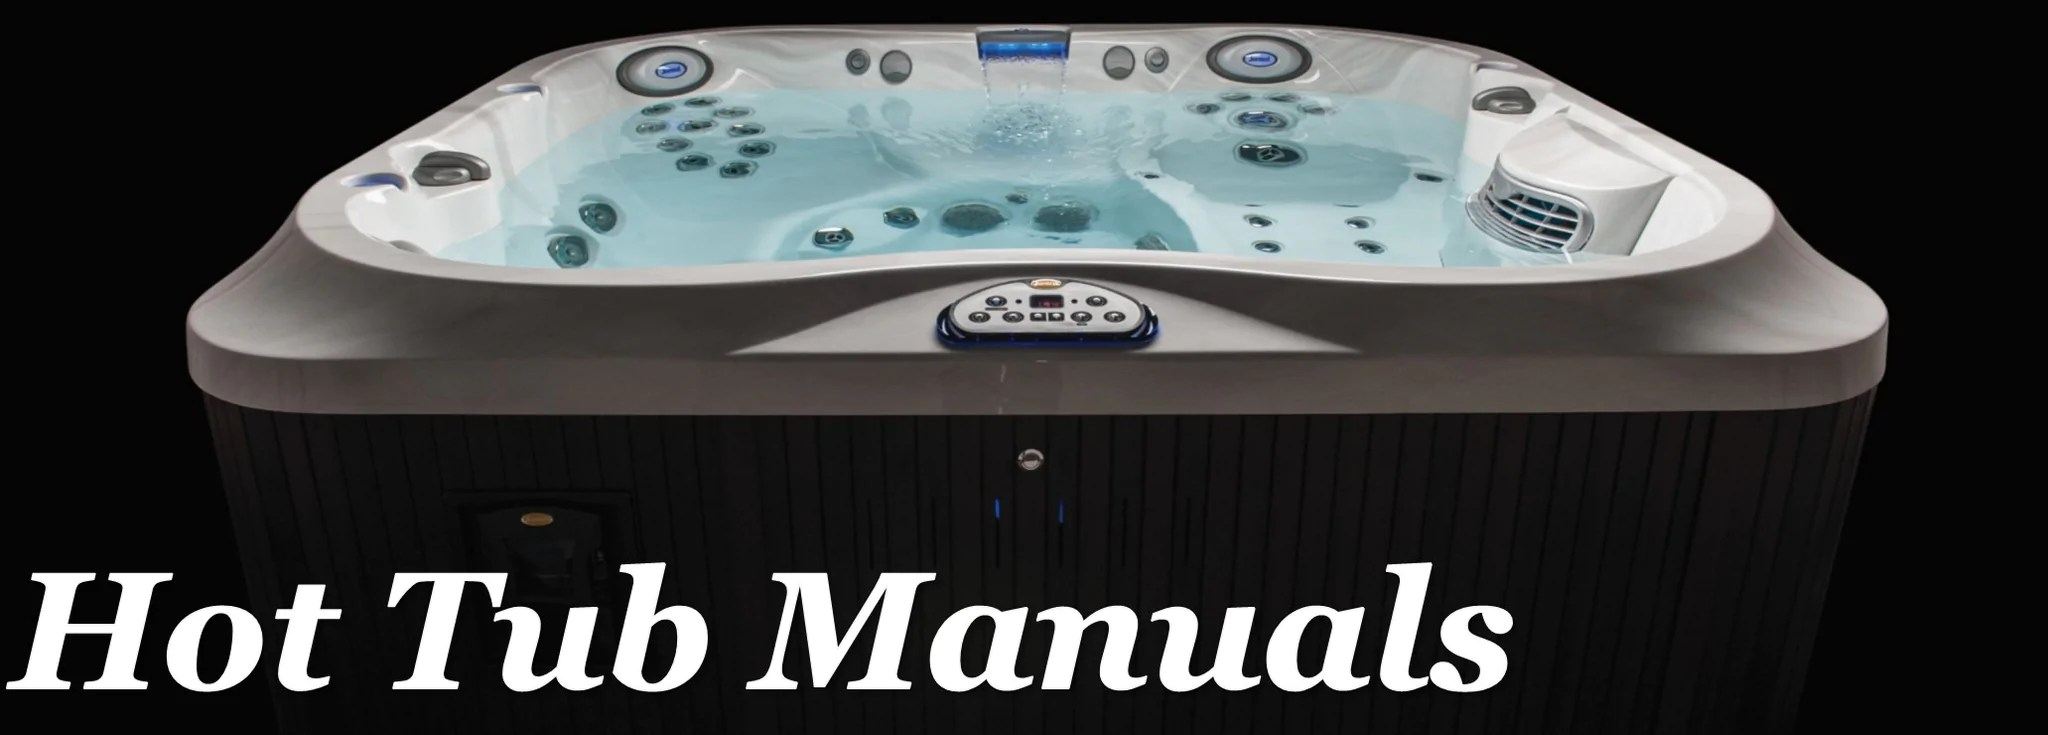 Jacuzzi Pool Manual Hot Tub Manuals User Guides Outdoor Living